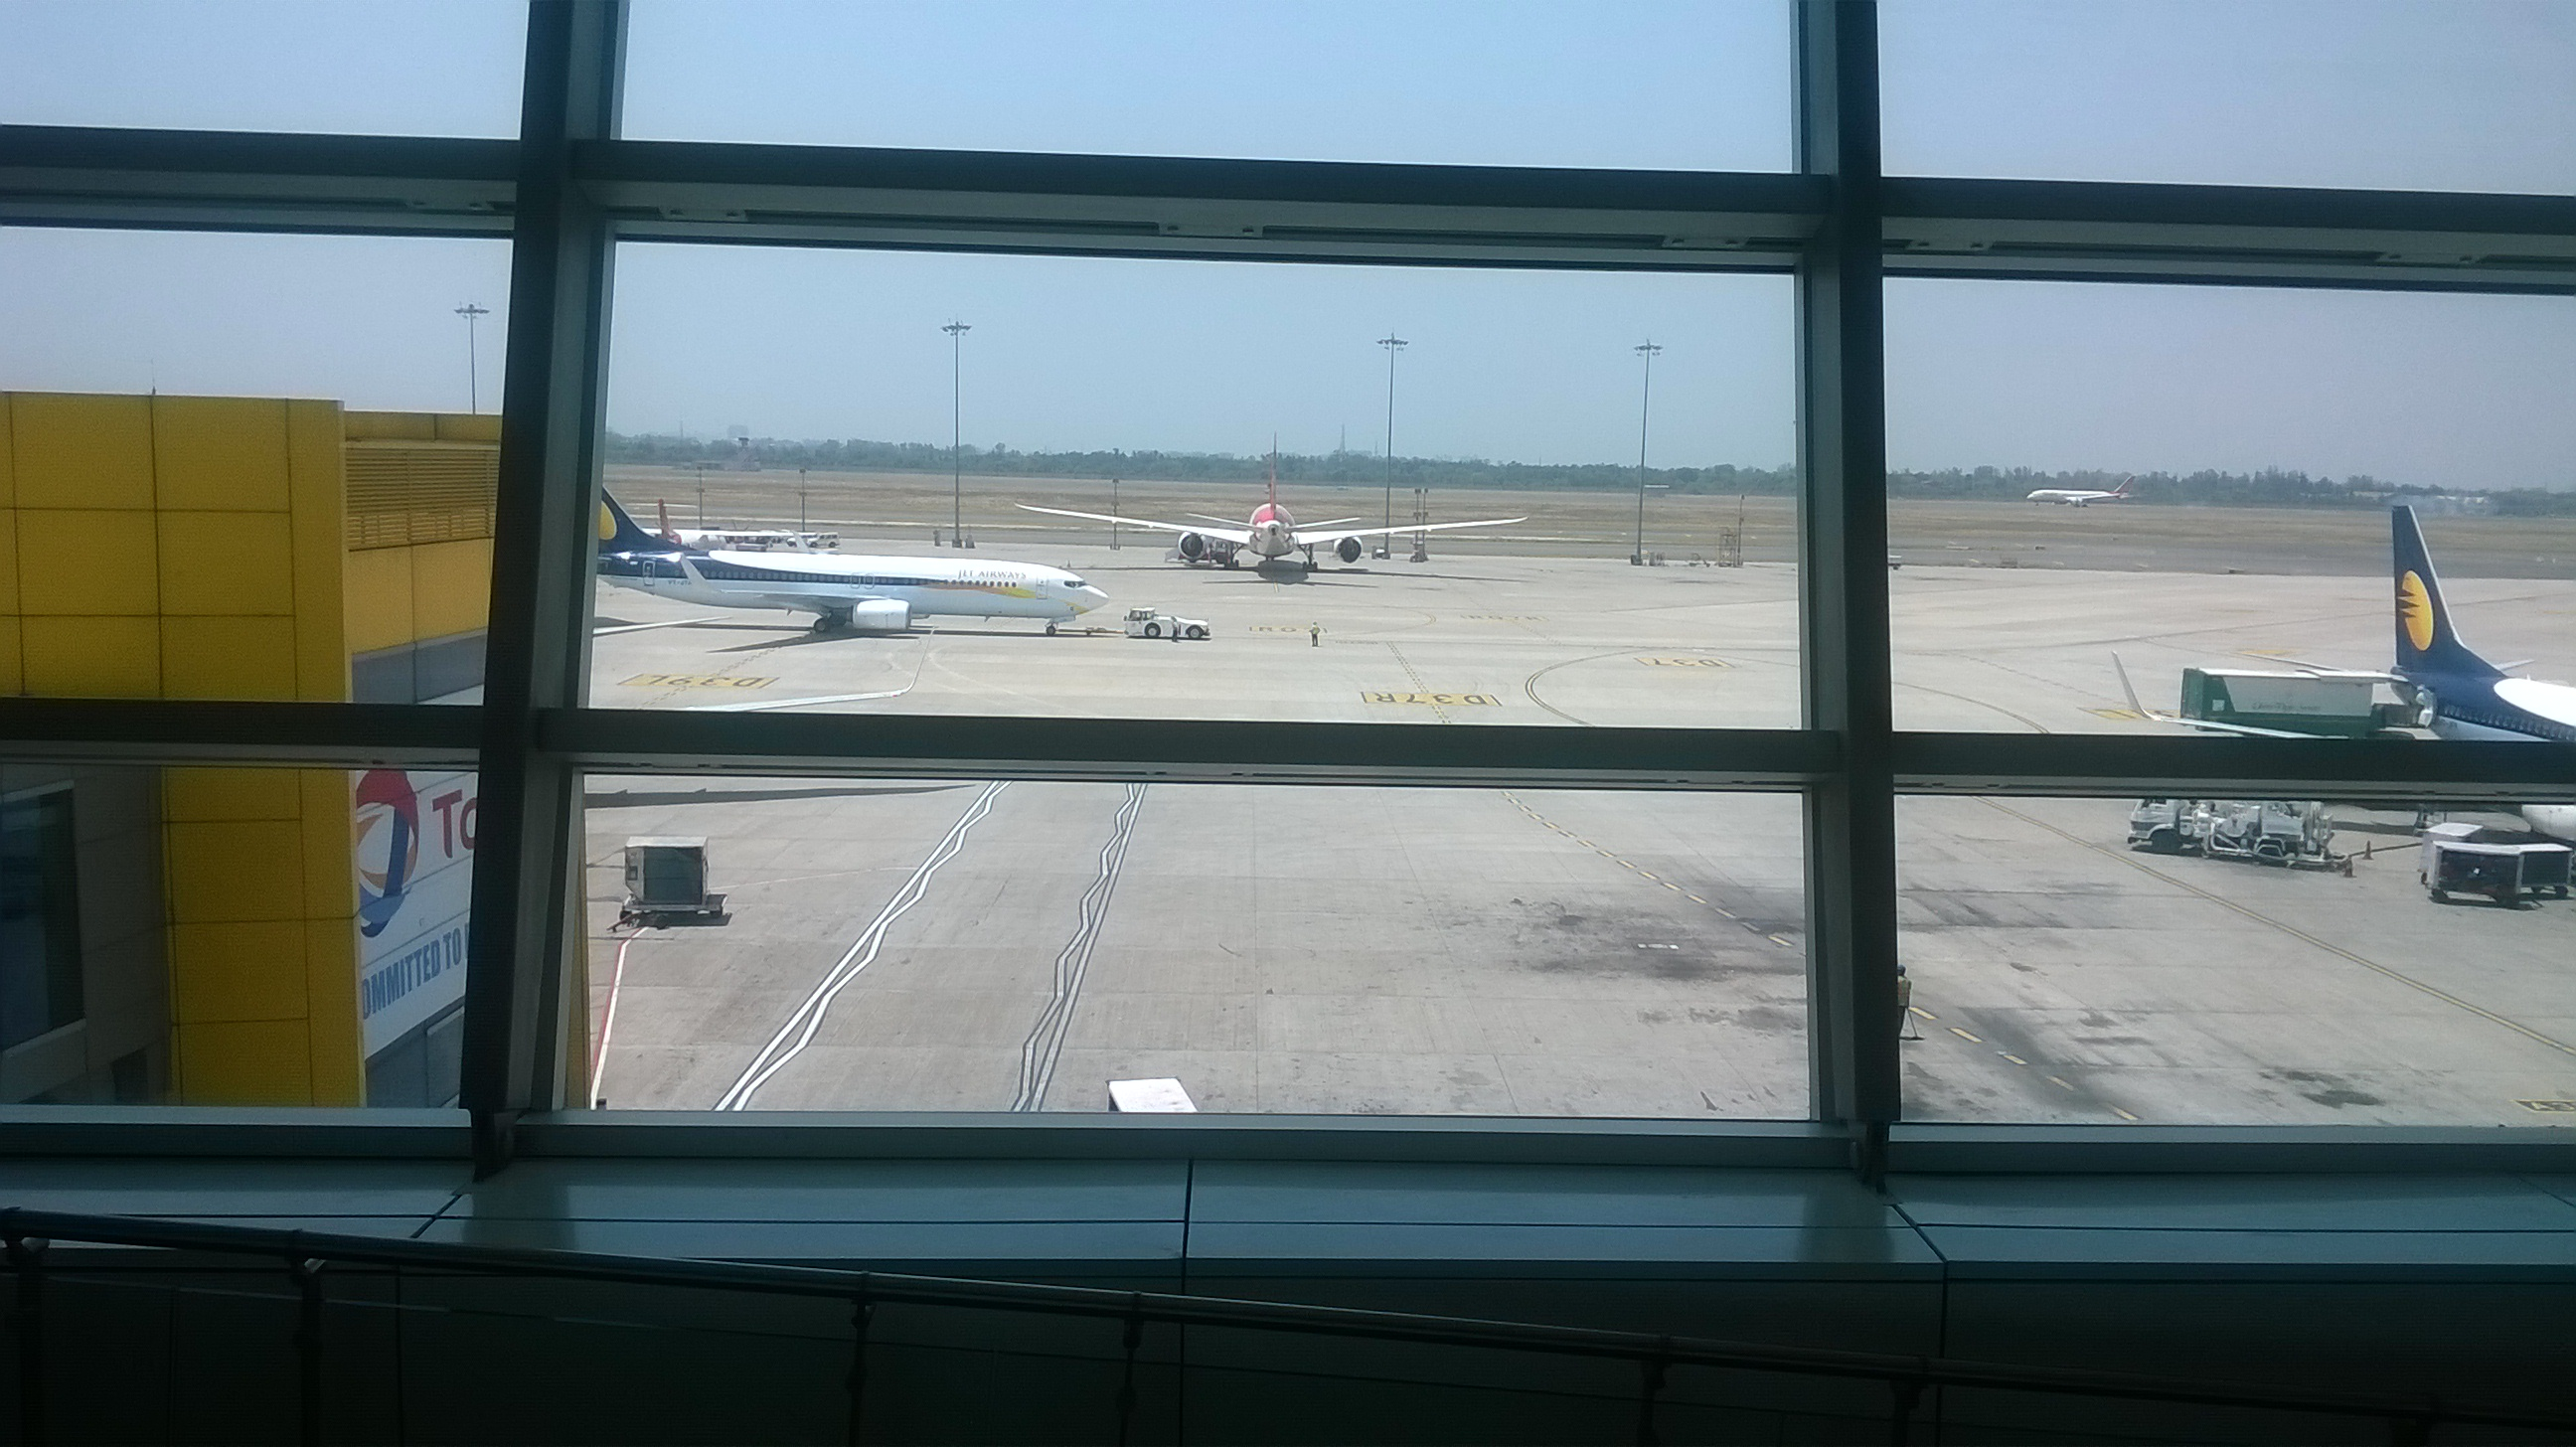 A view of Runway from IGI T3